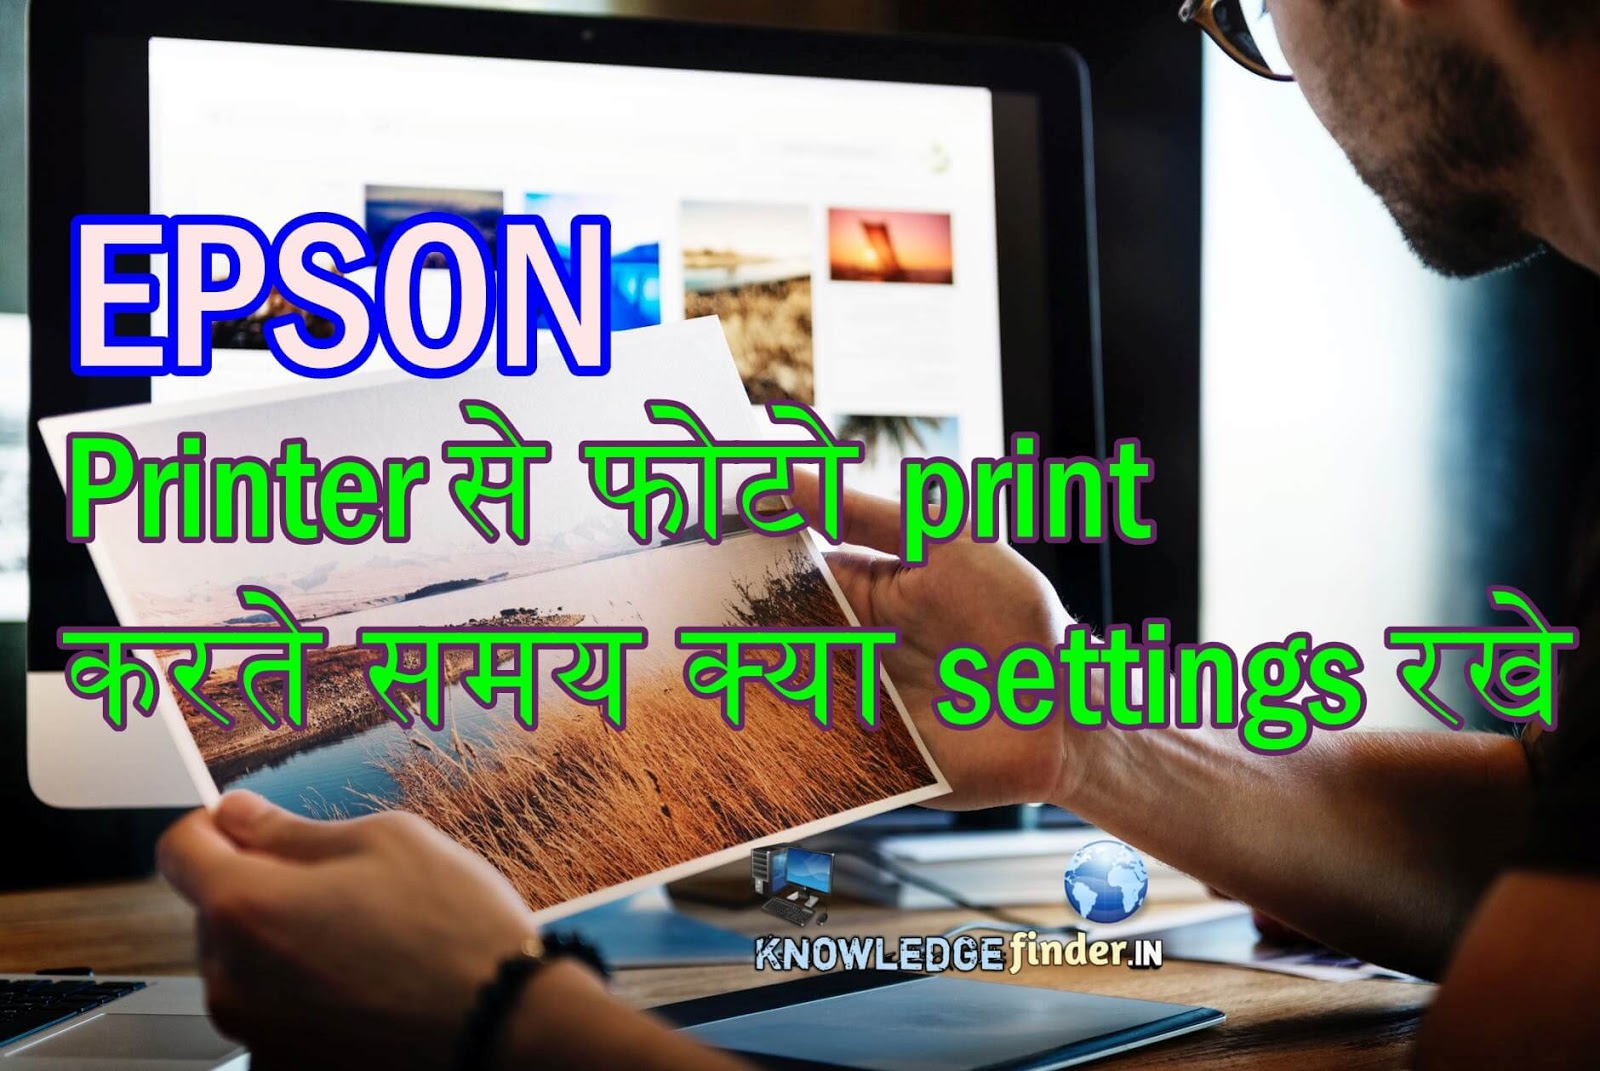 Epson L220 Photo print perfect settings, Photo print karte